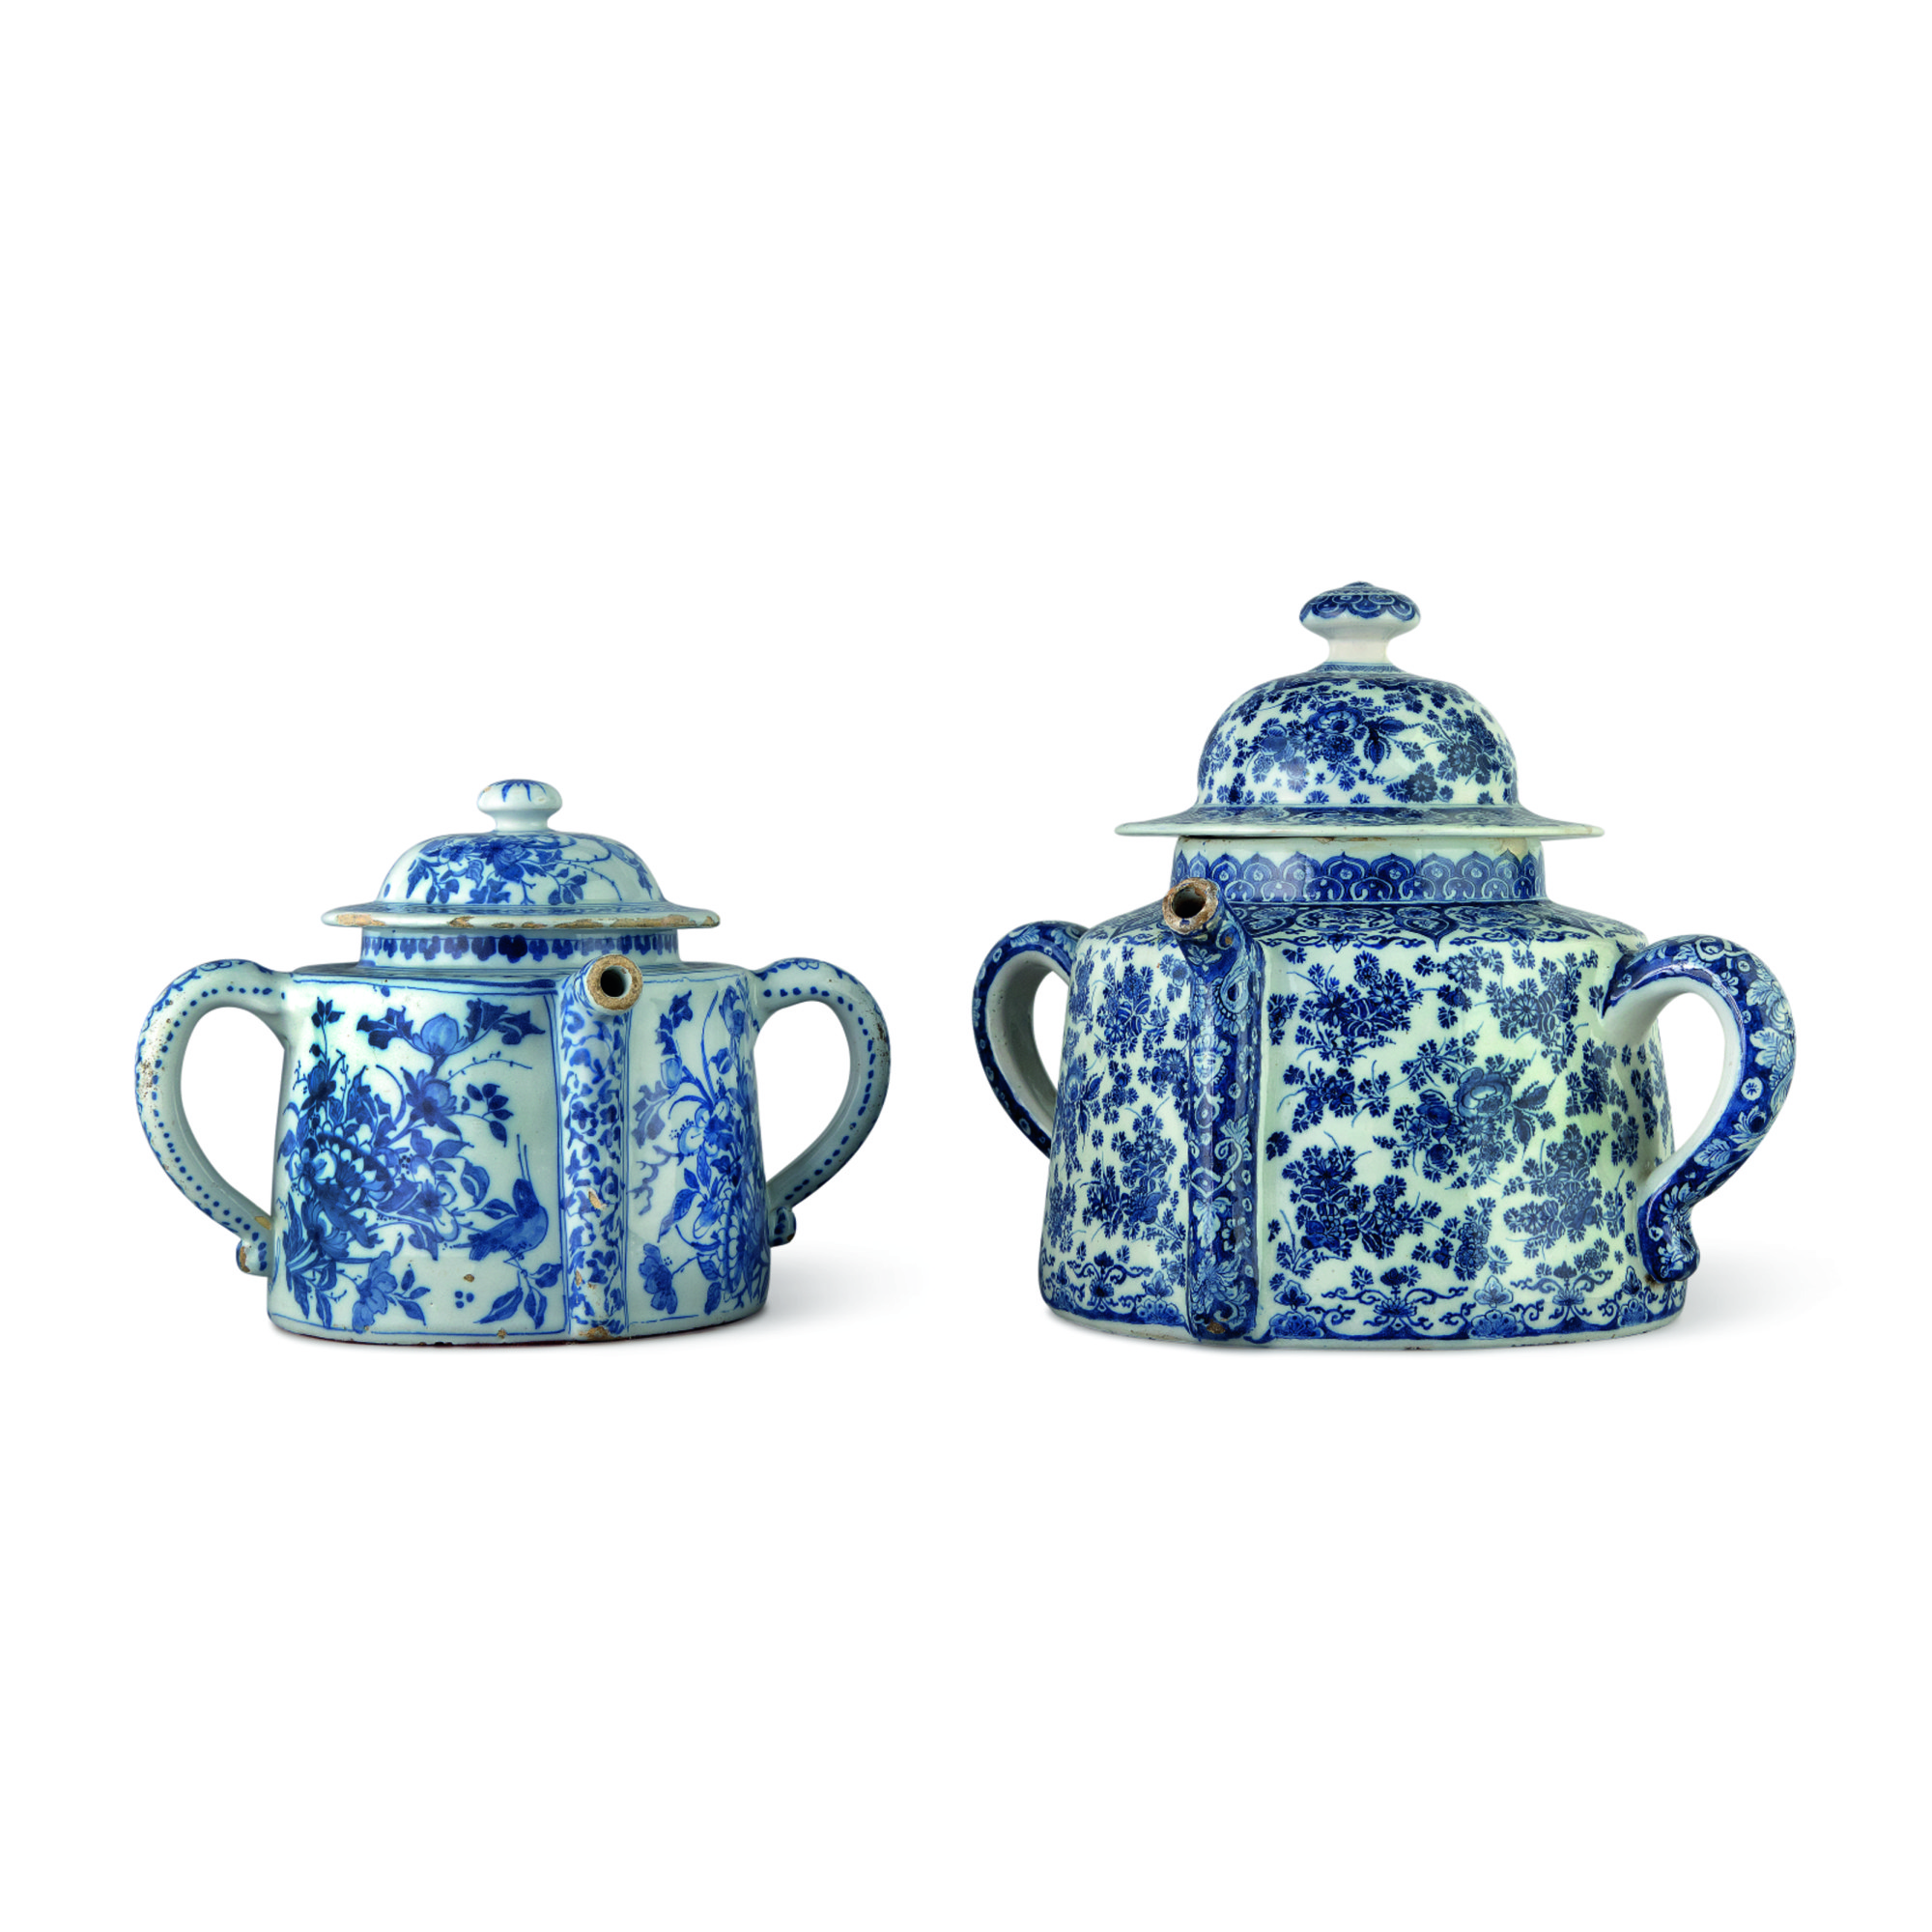 TWO DUTCH DELFT BLUE AND WHITE POSSET POTS AND COVERS, EARLY 18TH CENTURY